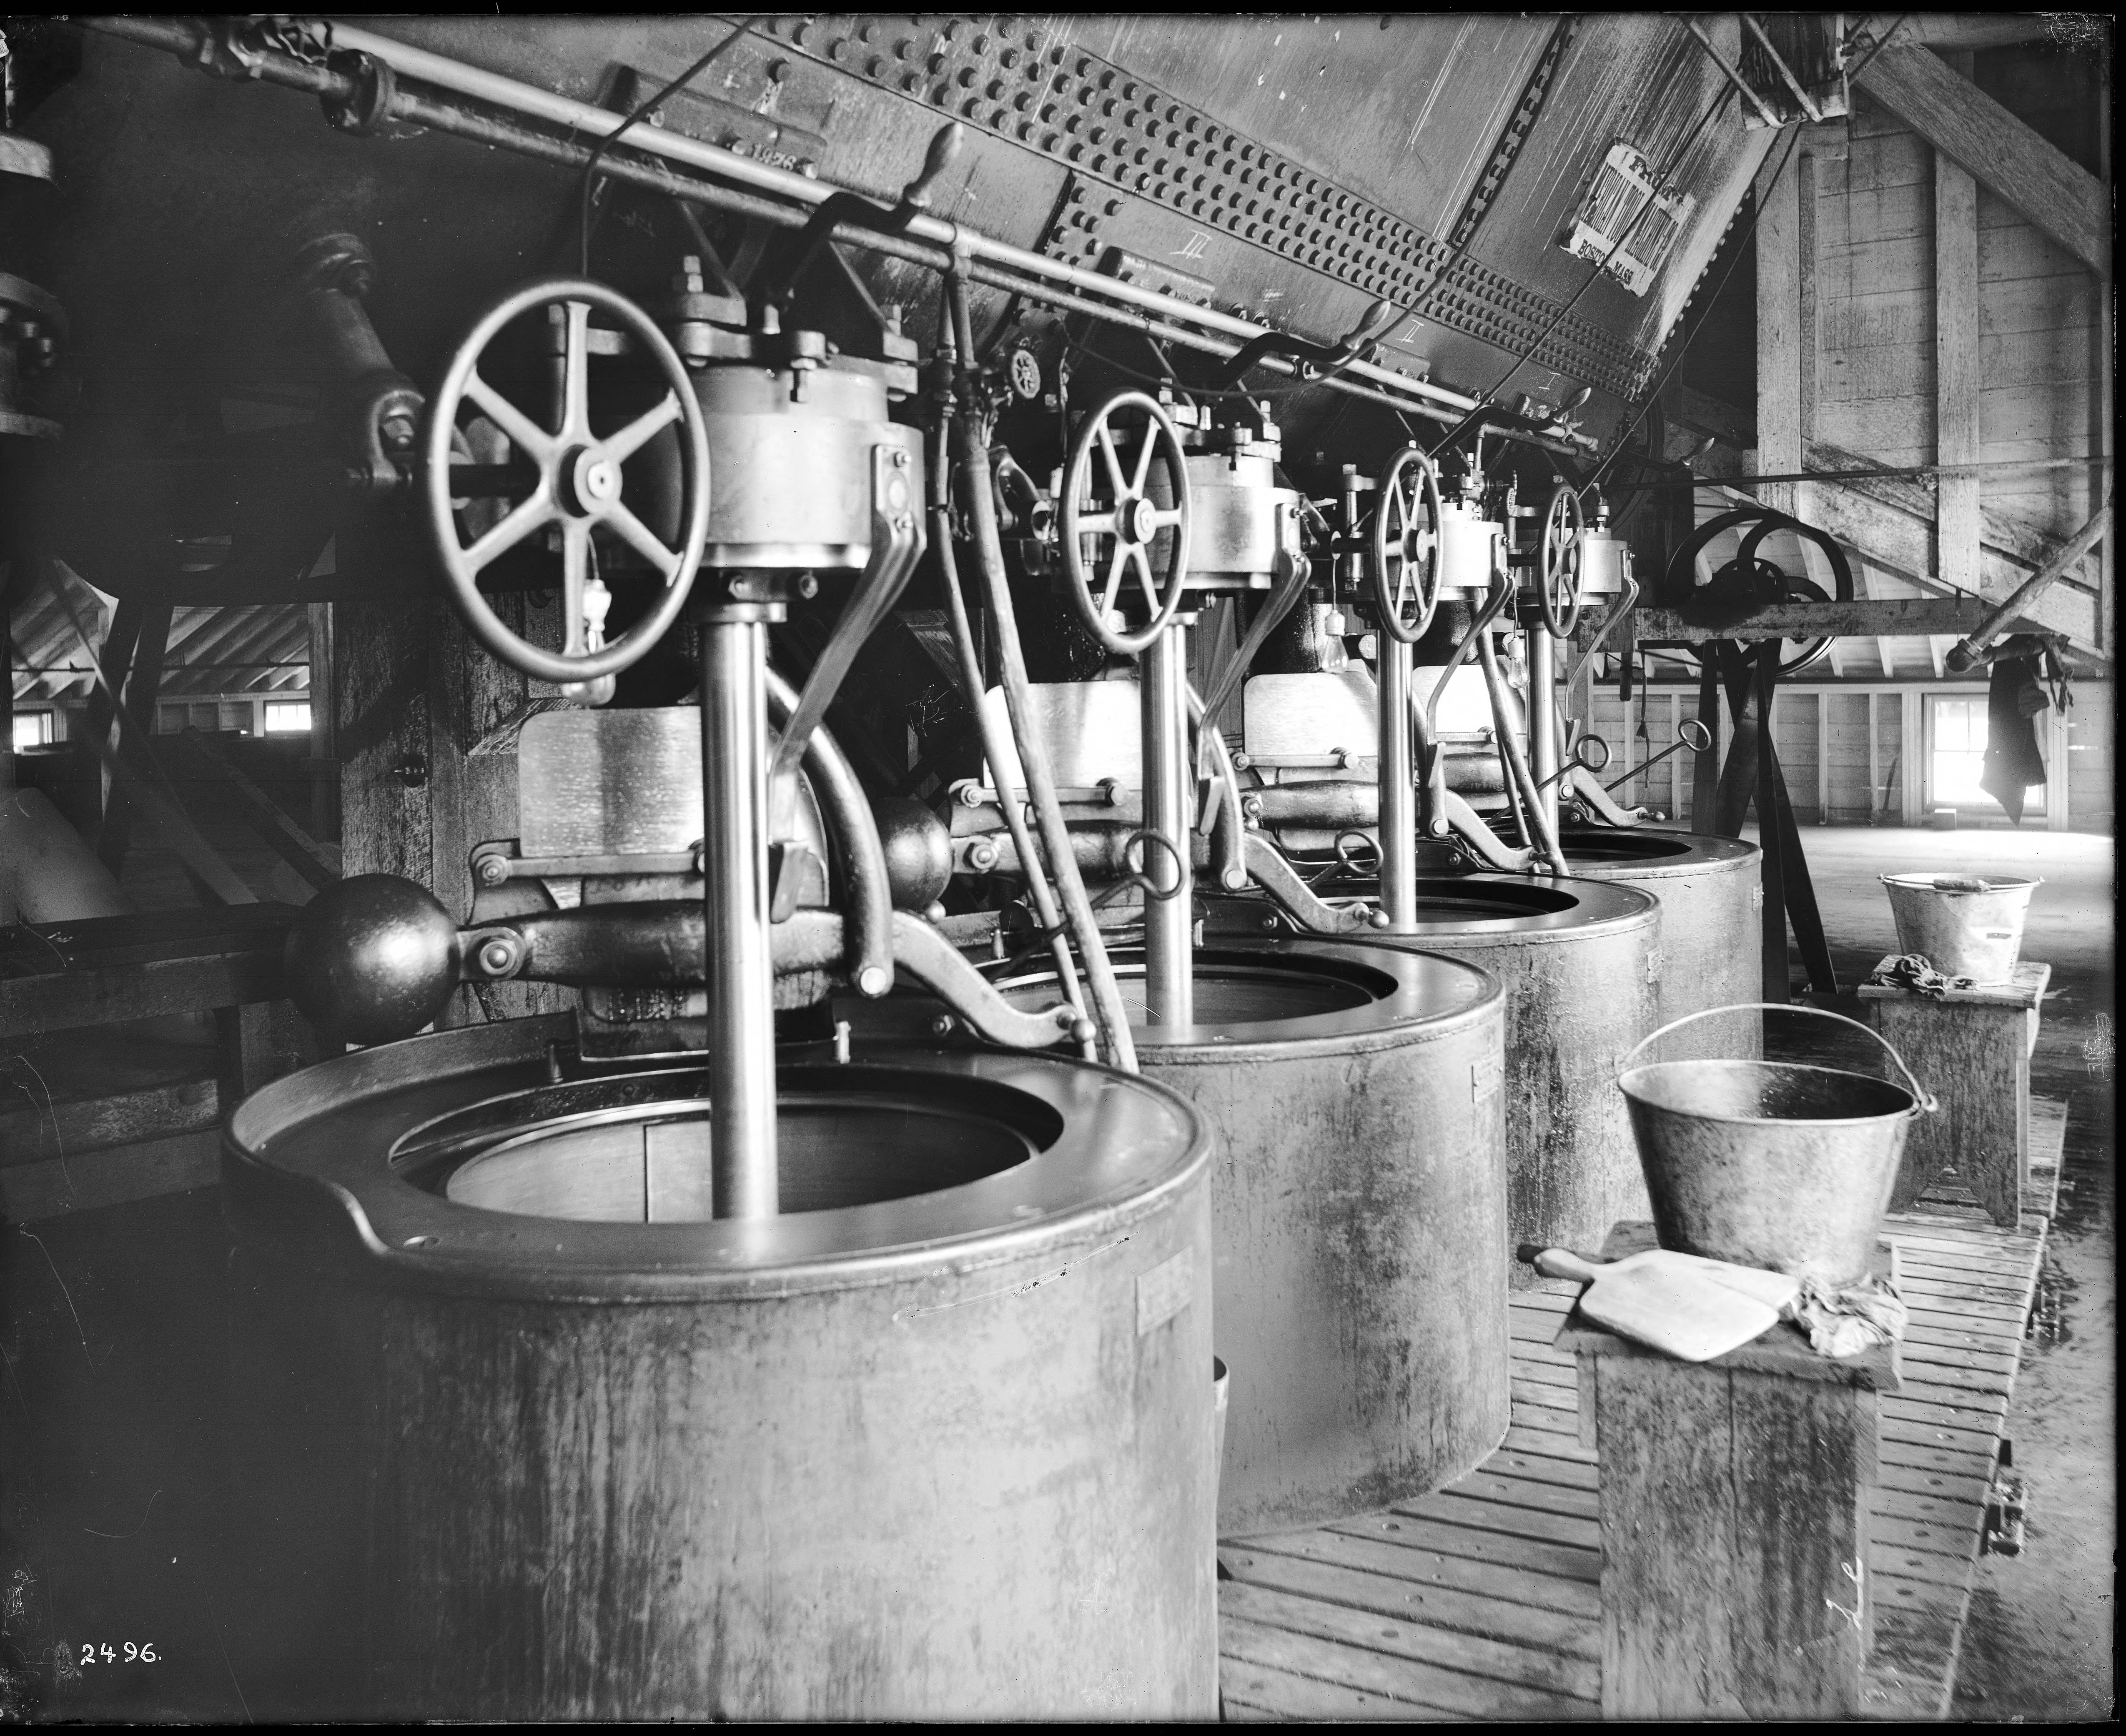 File:Interior of a beet sugar factory showing centrifuges (CHS-2496).